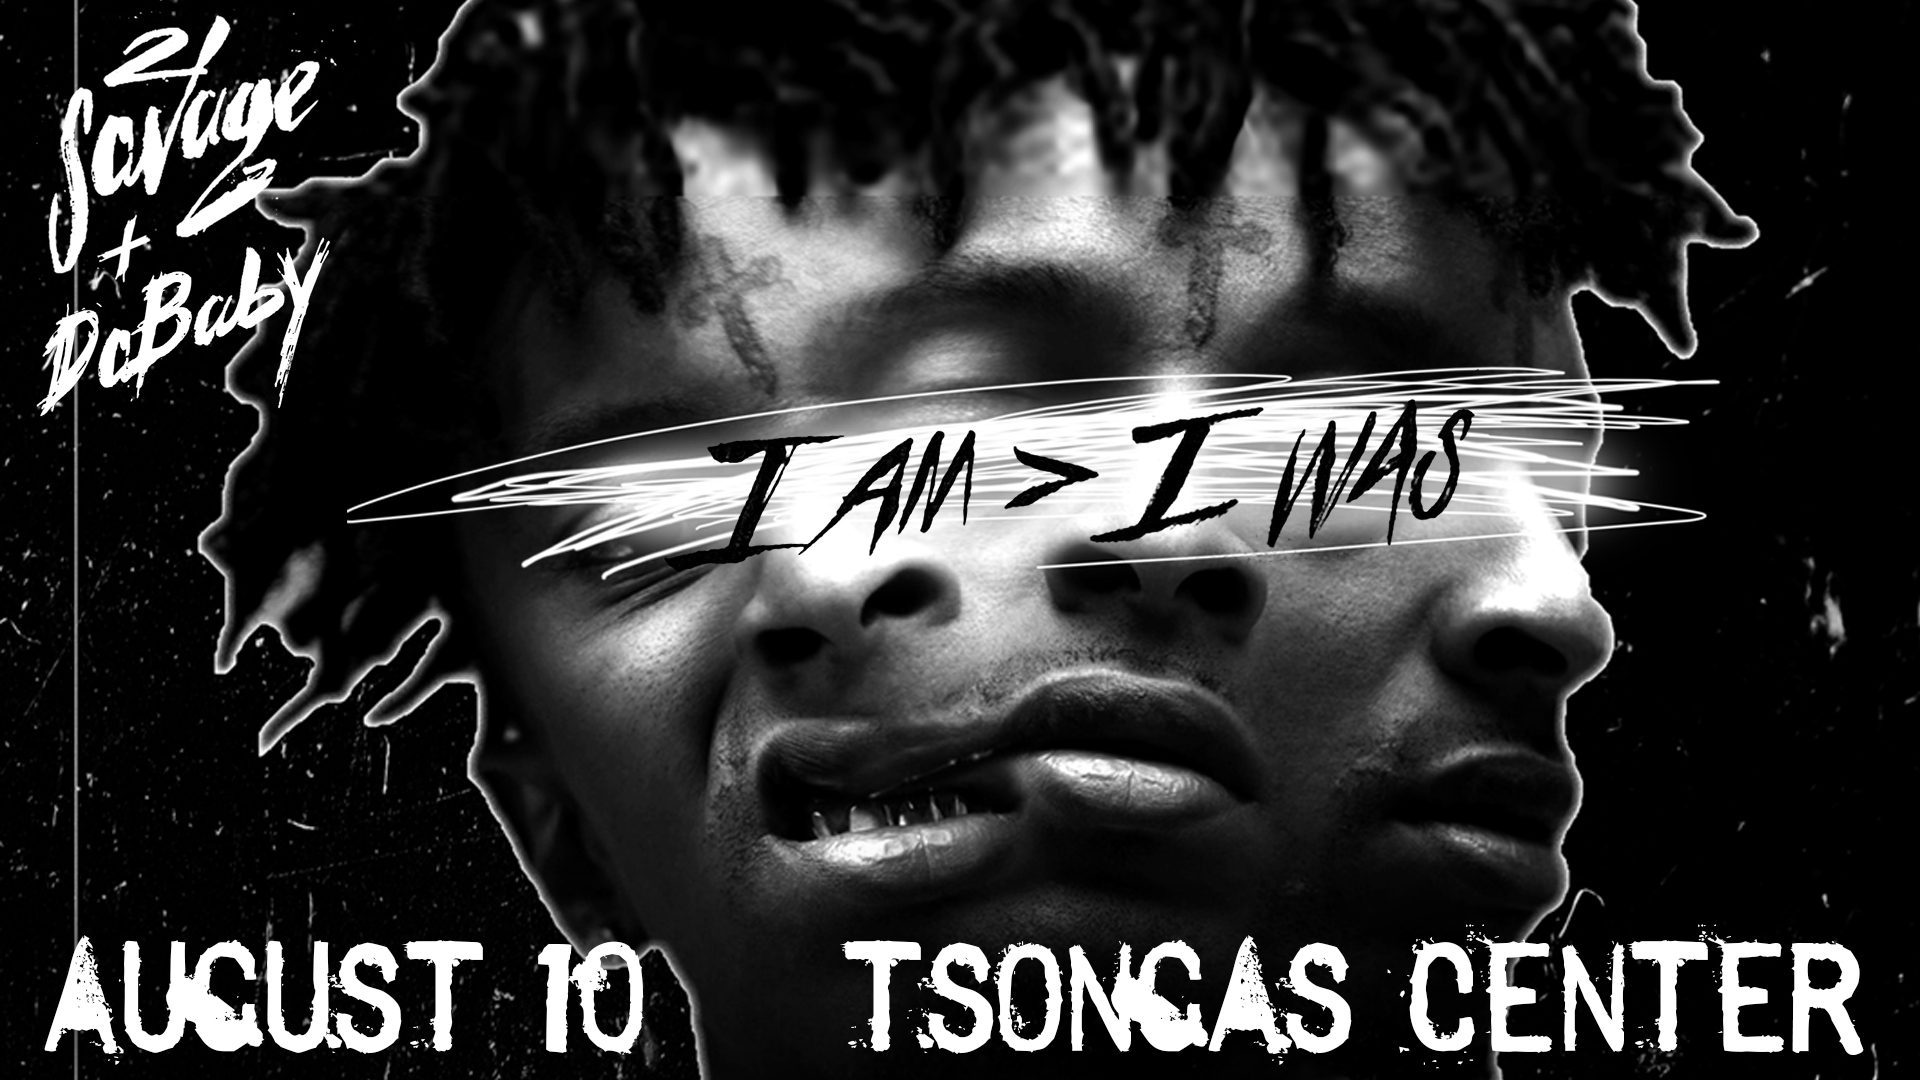 21 savage i am i was tour live at the tsongas center merrimack valley massachusetts 21 savage i am i was tour live at